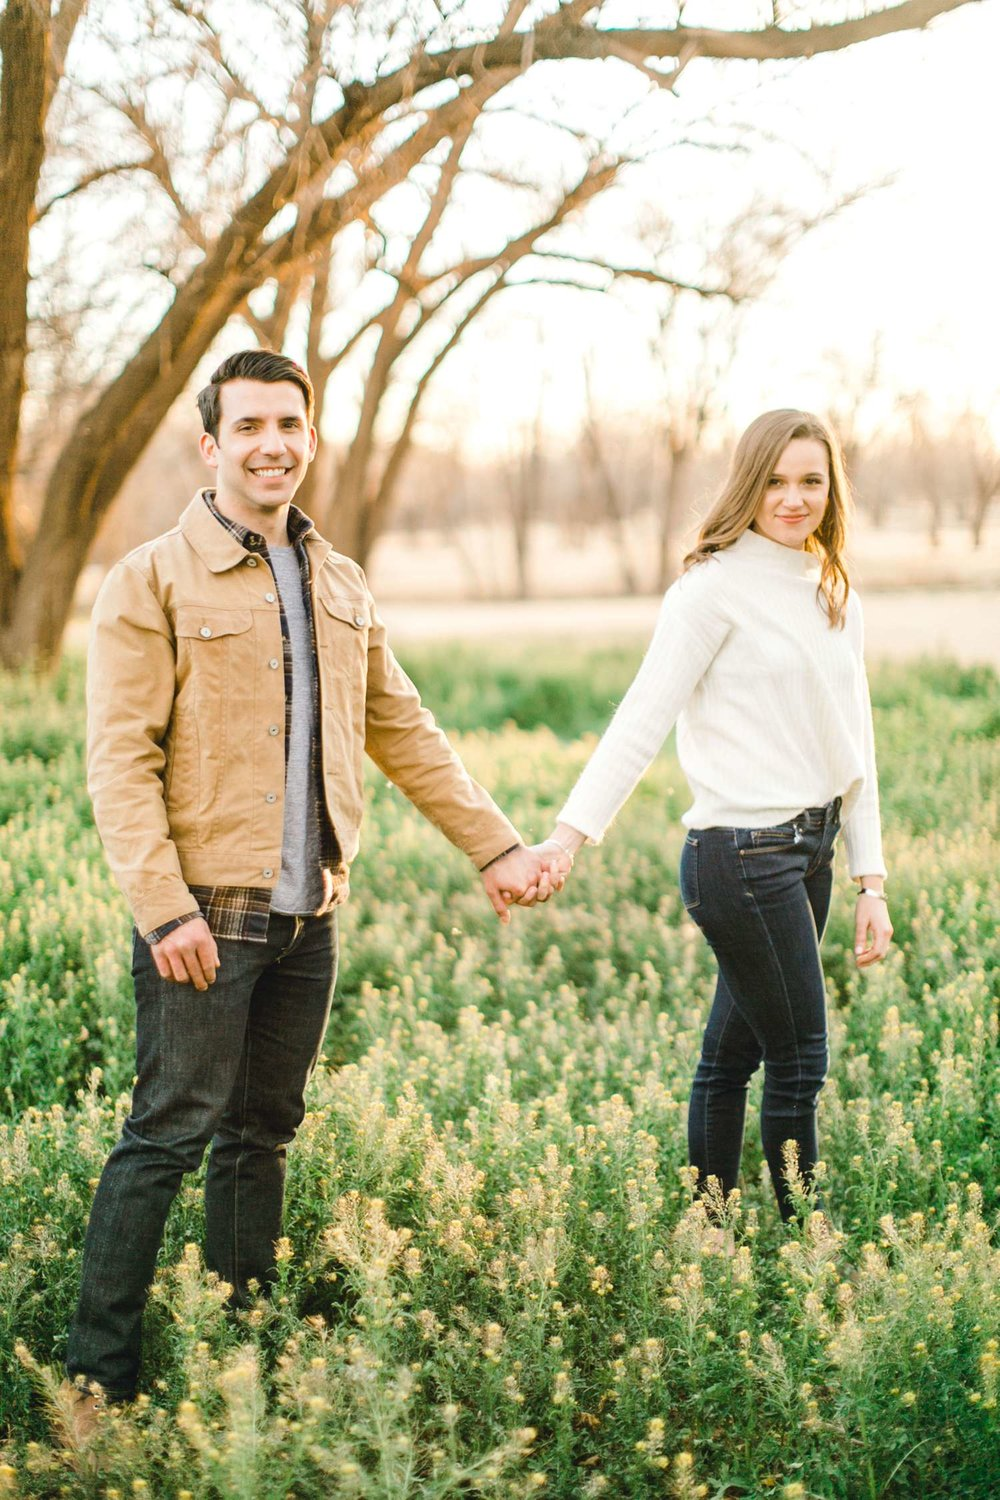 CAROLINE+CHRISTIAN+ALLEEJ+ENGAGEMENTS+LUBBOCK+WEDDING+PHOTOGRAPHER+FIRST+BAPTIST+CHURCH_0048.jpg